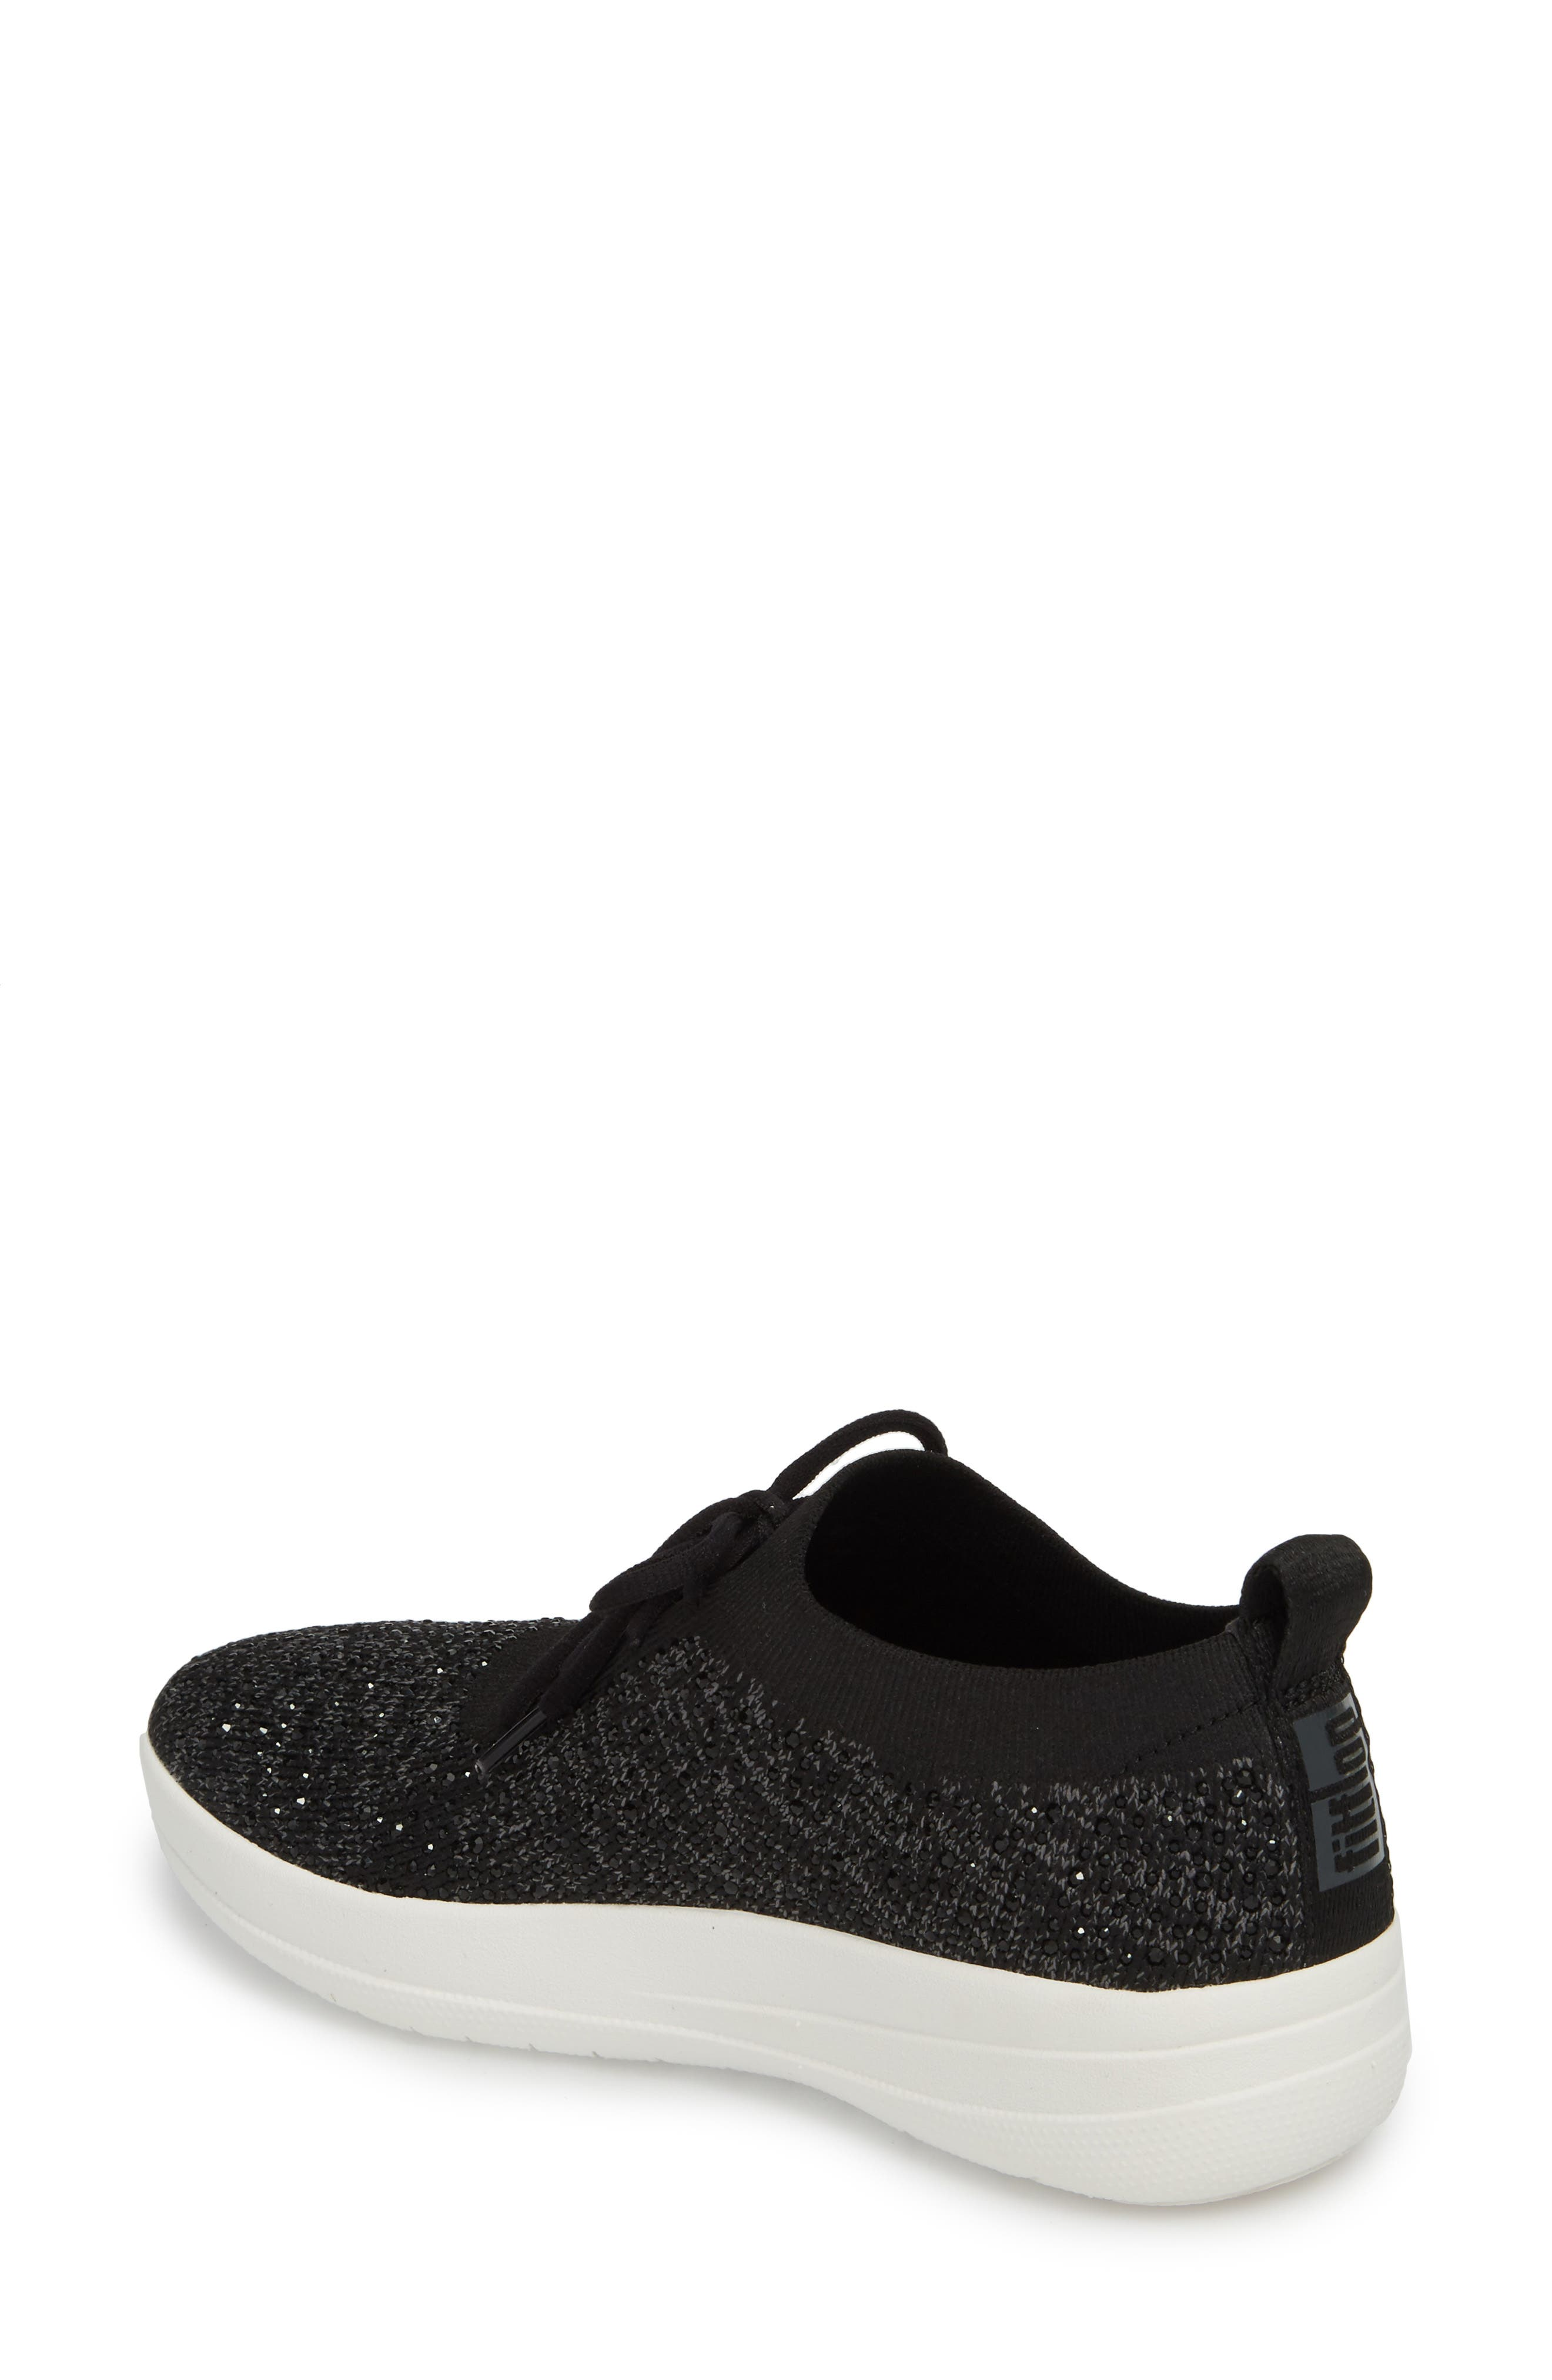 FITFLOP, Uberknit<sup>™</sup> F-Sporty Sneaker, Alternate thumbnail 2, color, 001